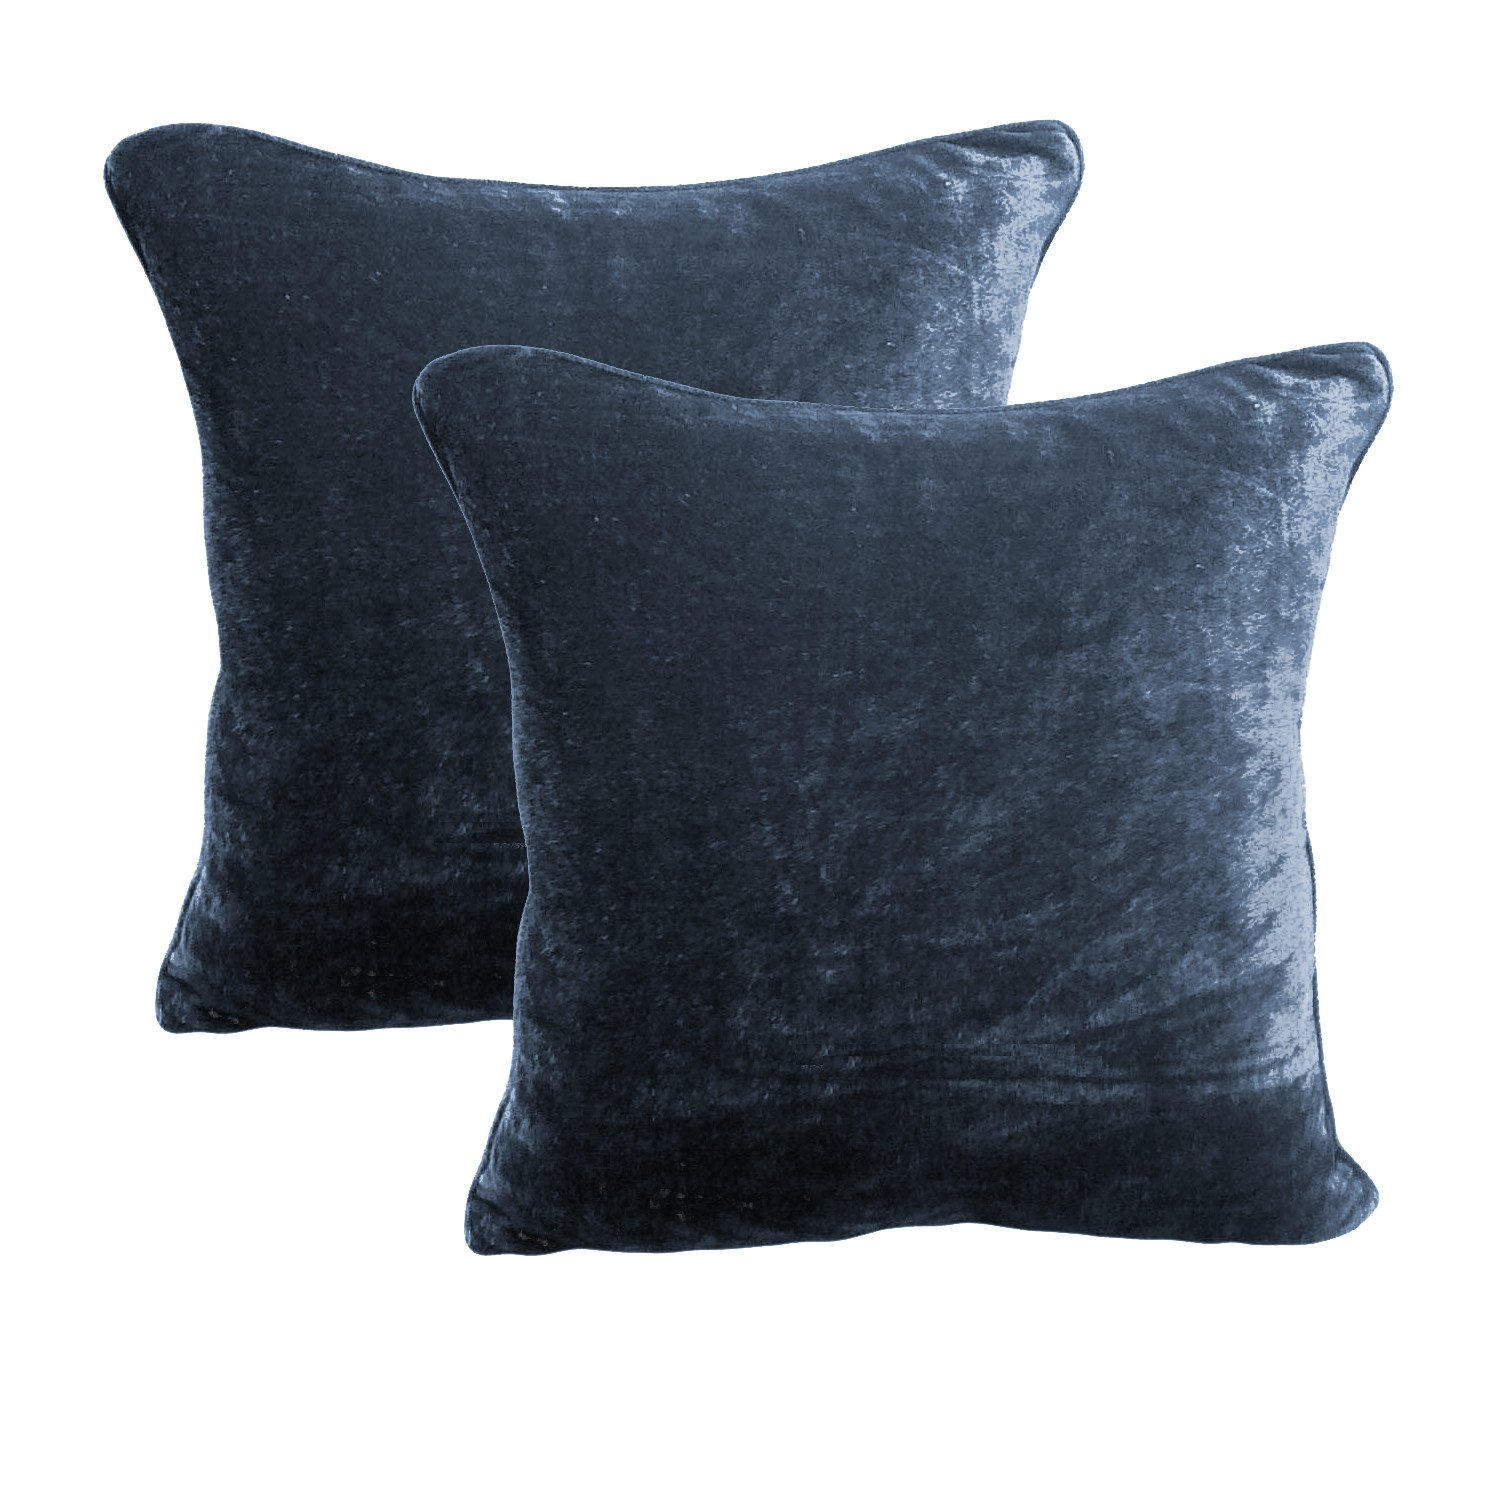 BRIGHTLINEN 2Pcs Cushion Cover(Navy Blue, 20'' X 20'' 20Inches x 20Inches) 100% Cotton Velvet Hotel Quality 600 Thread Count